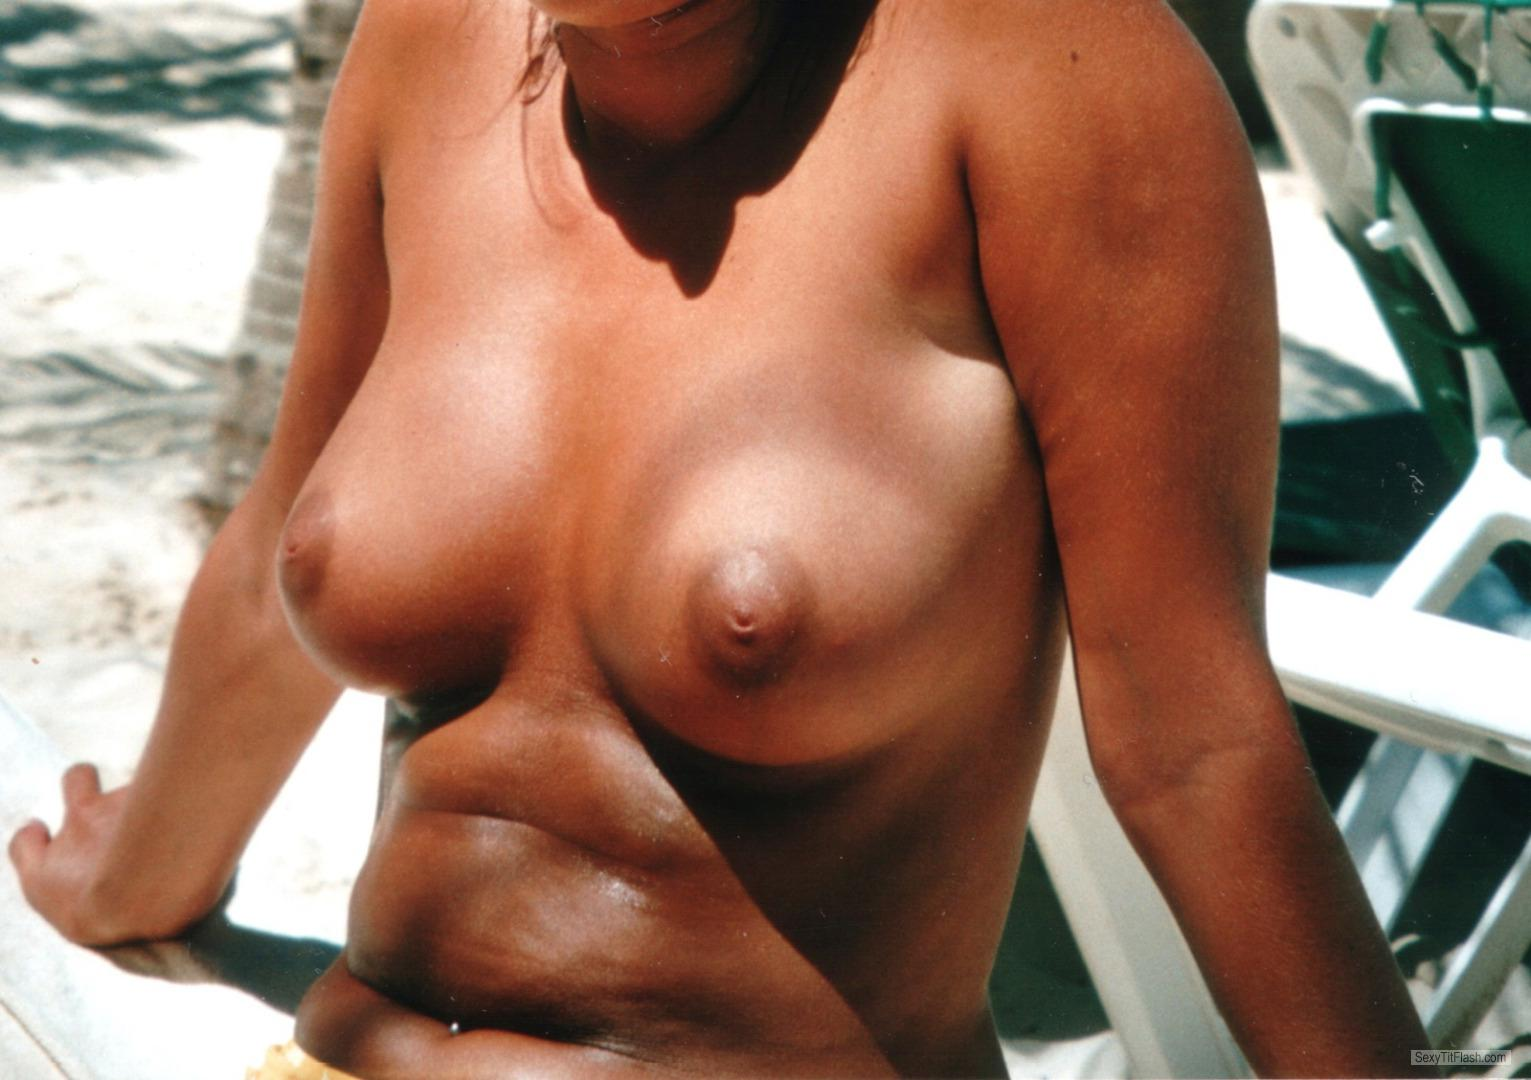 Medium Tits Of My Ex-Girlfriend Tanja